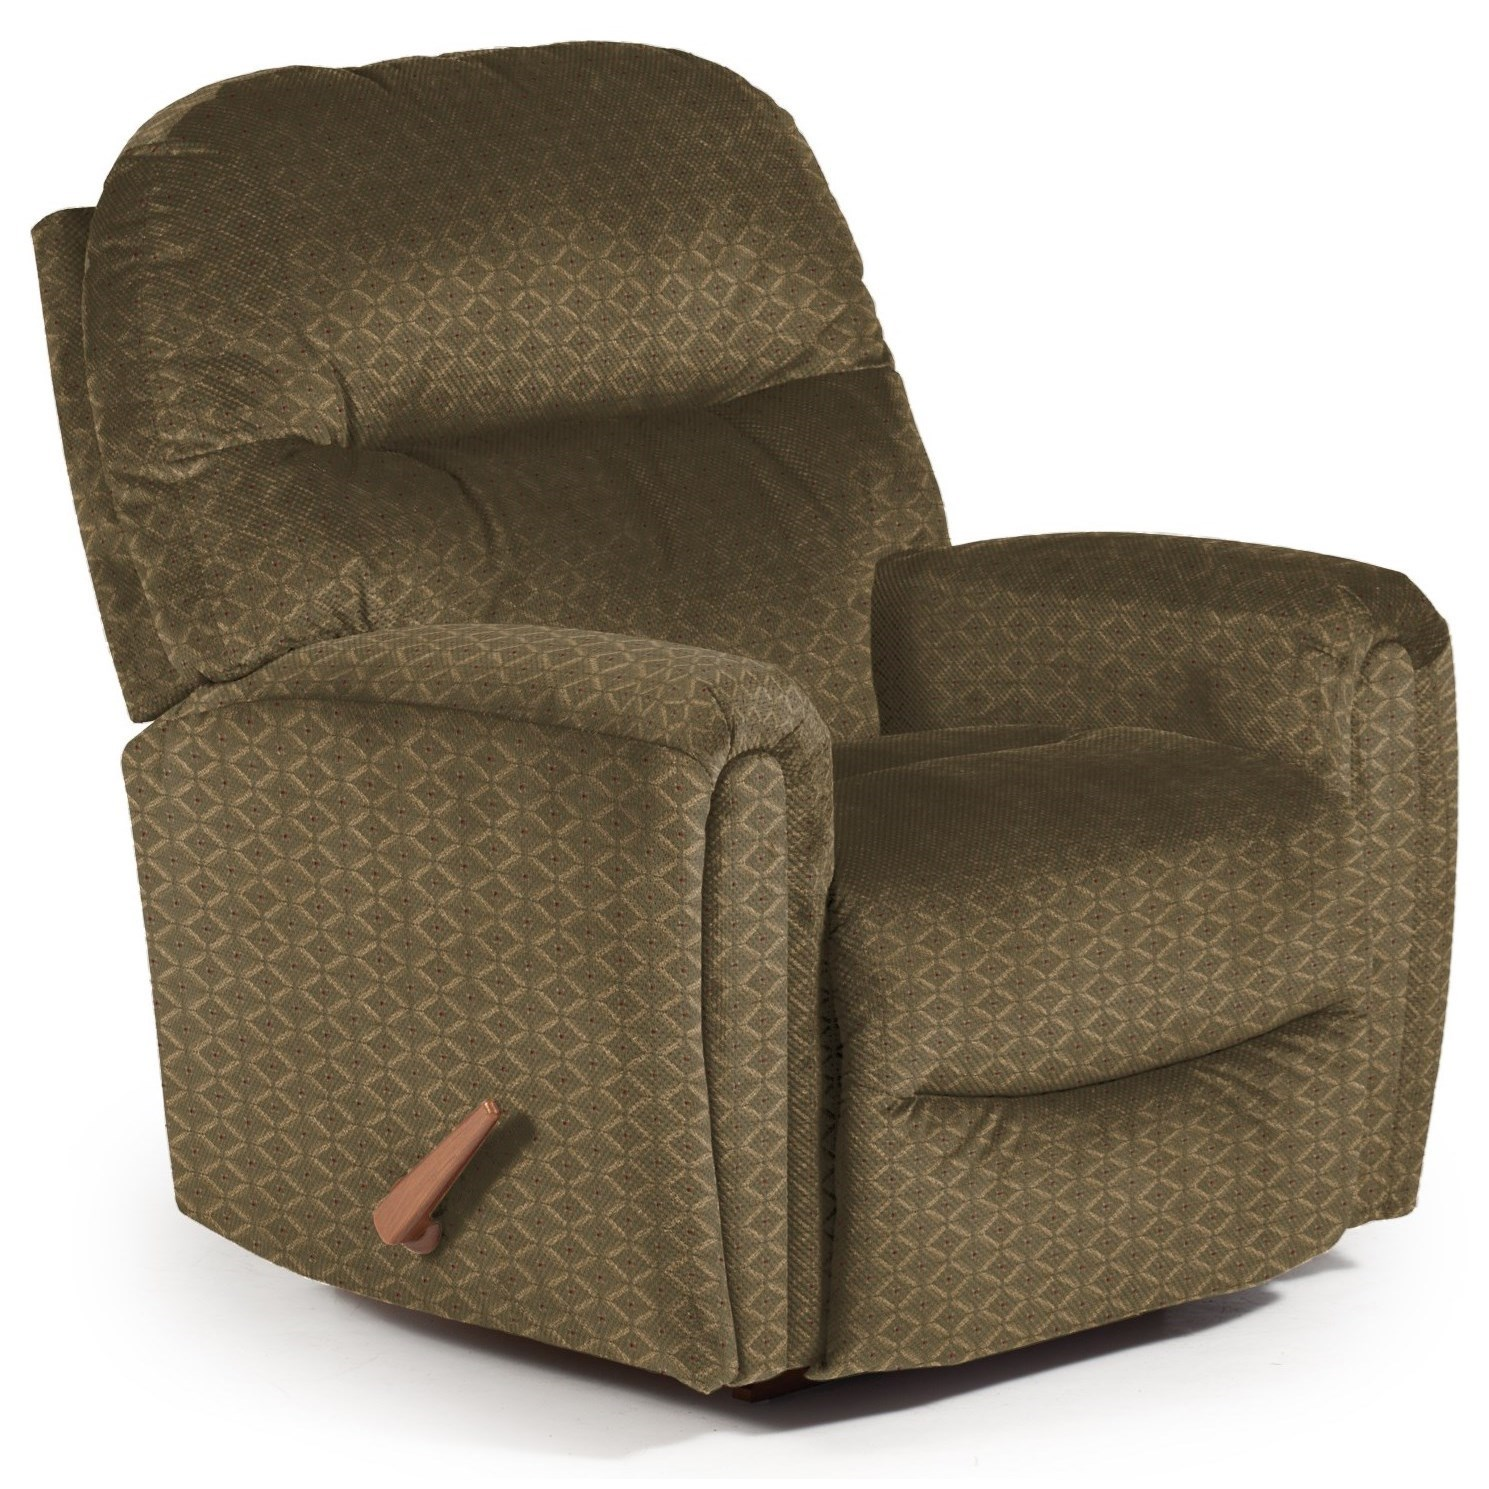 Best Home Furnishings Recliners - Medium Markson Power Rocker Recliner - Item Number: 1062032165-18021